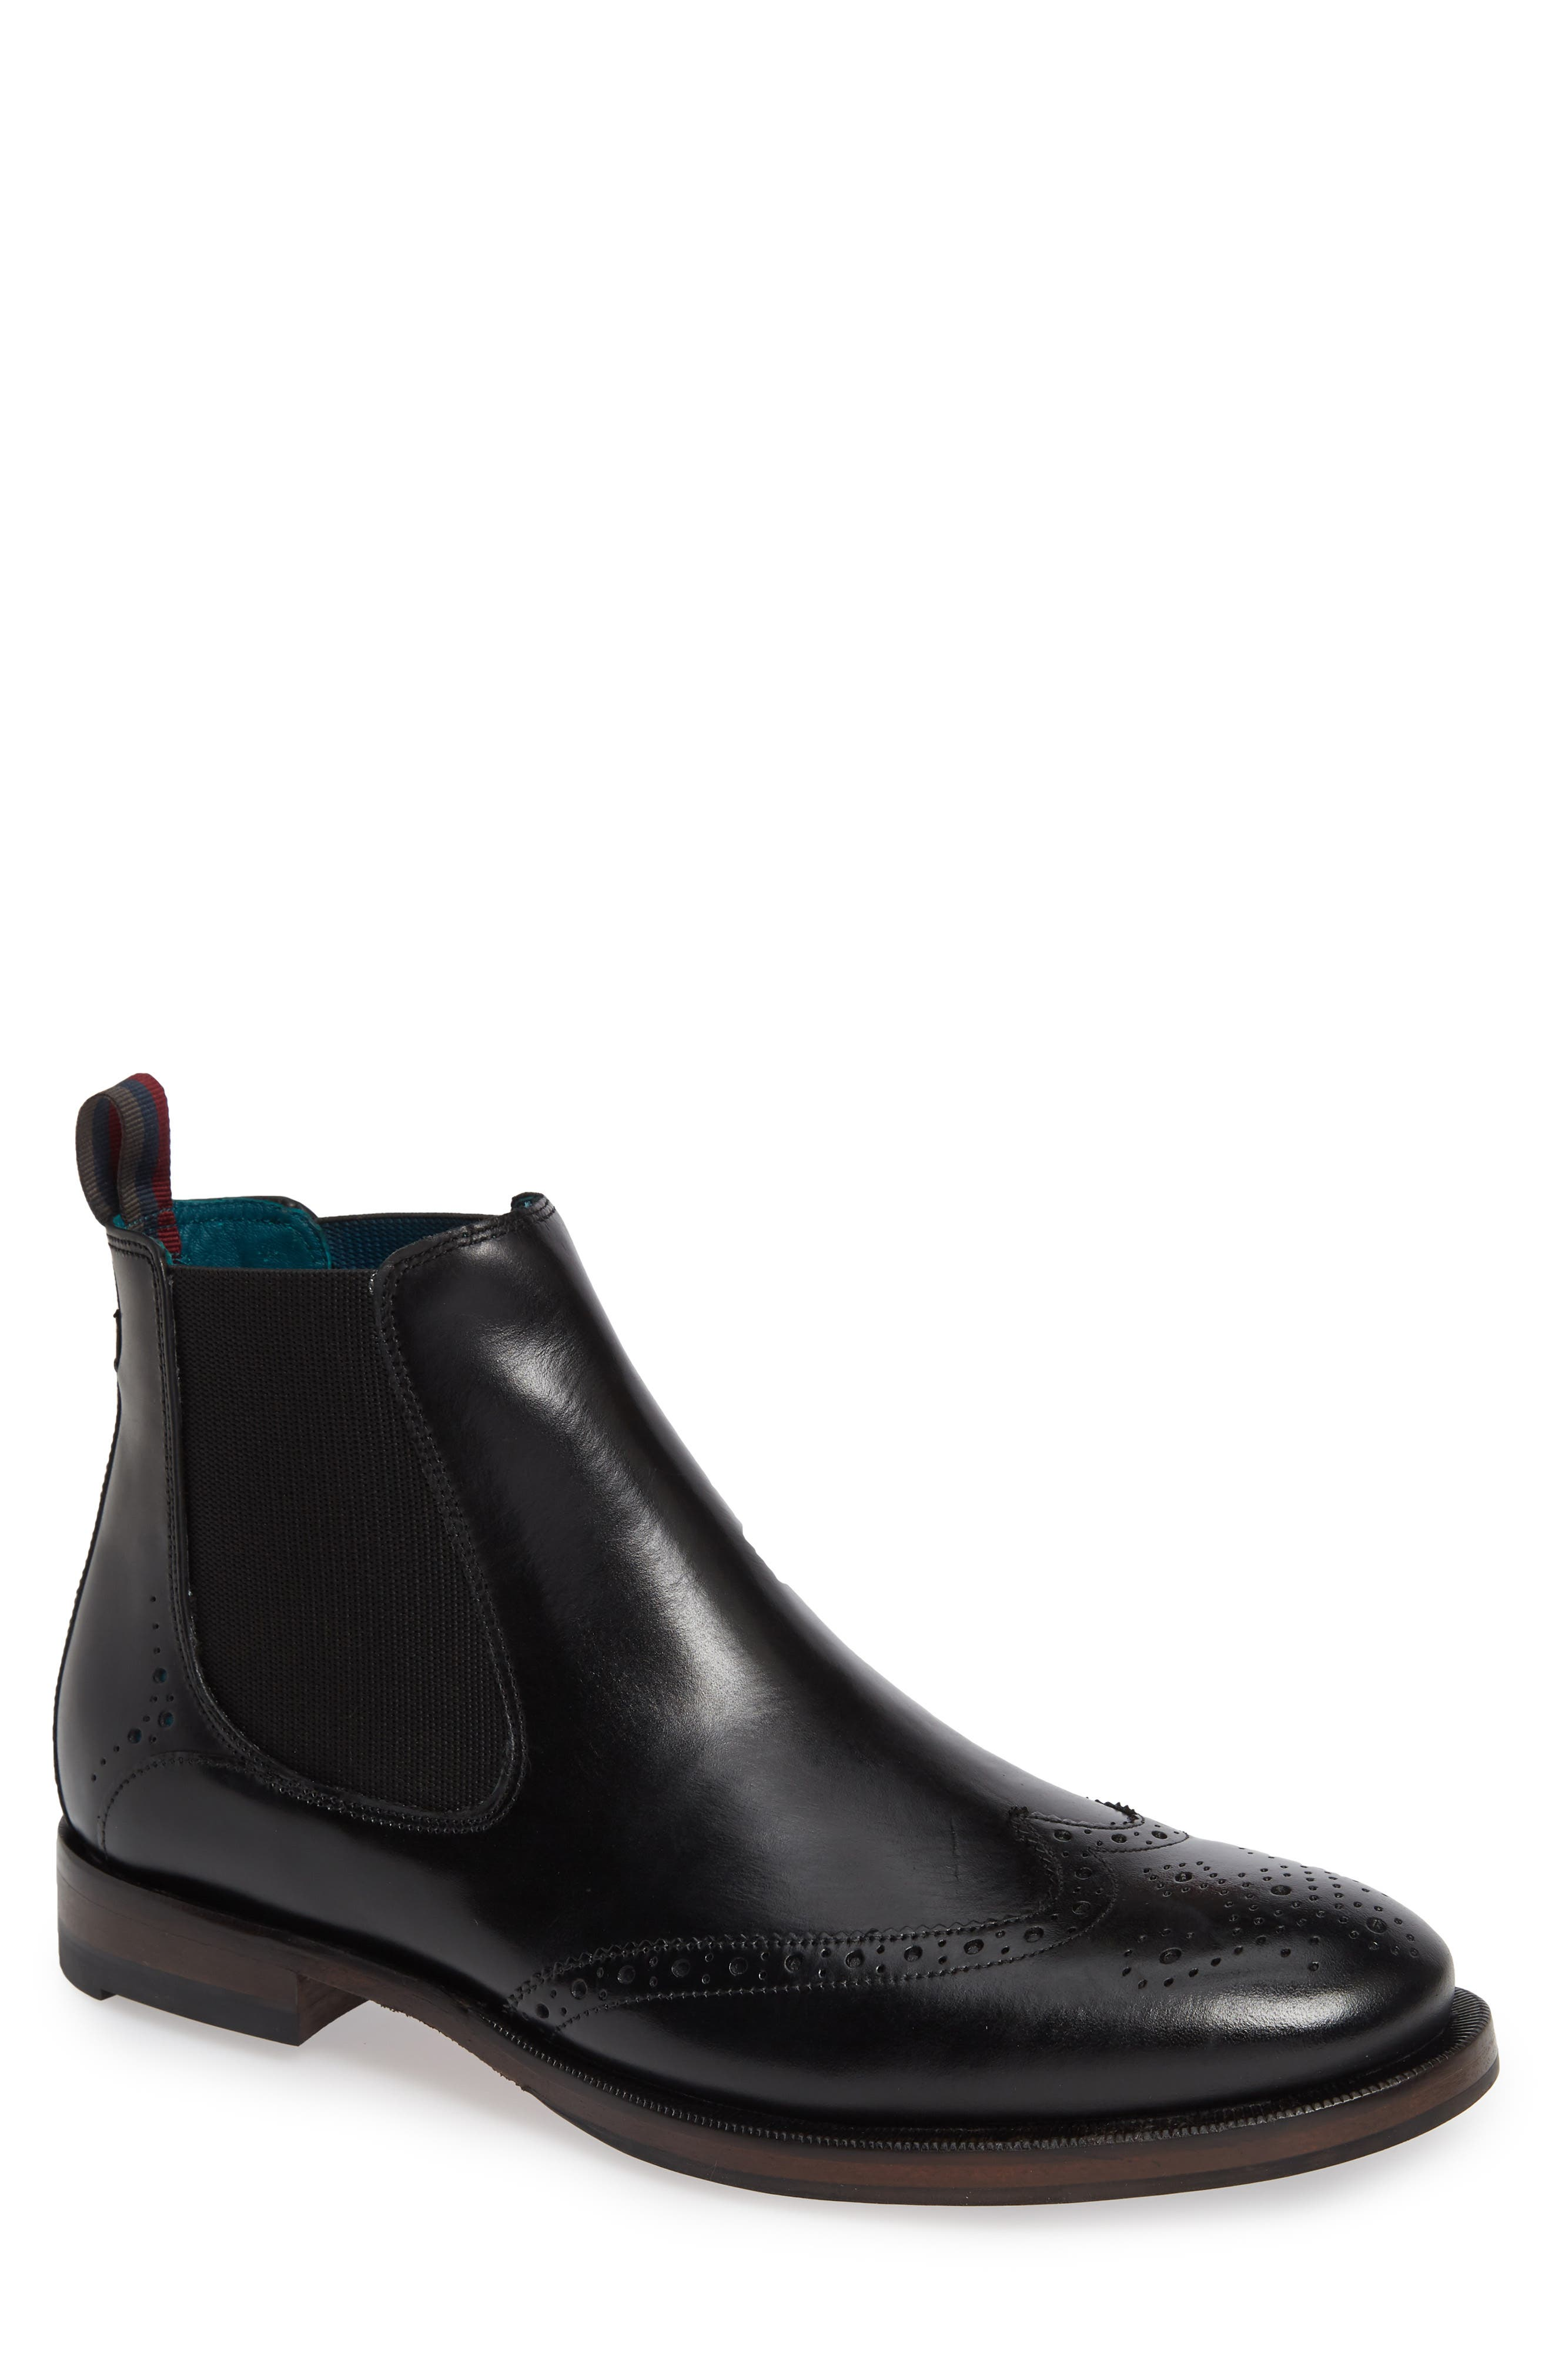 Camheri Wingtip Chelsea Boot,                             Main thumbnail 1, color,                             BLACK LEATHER